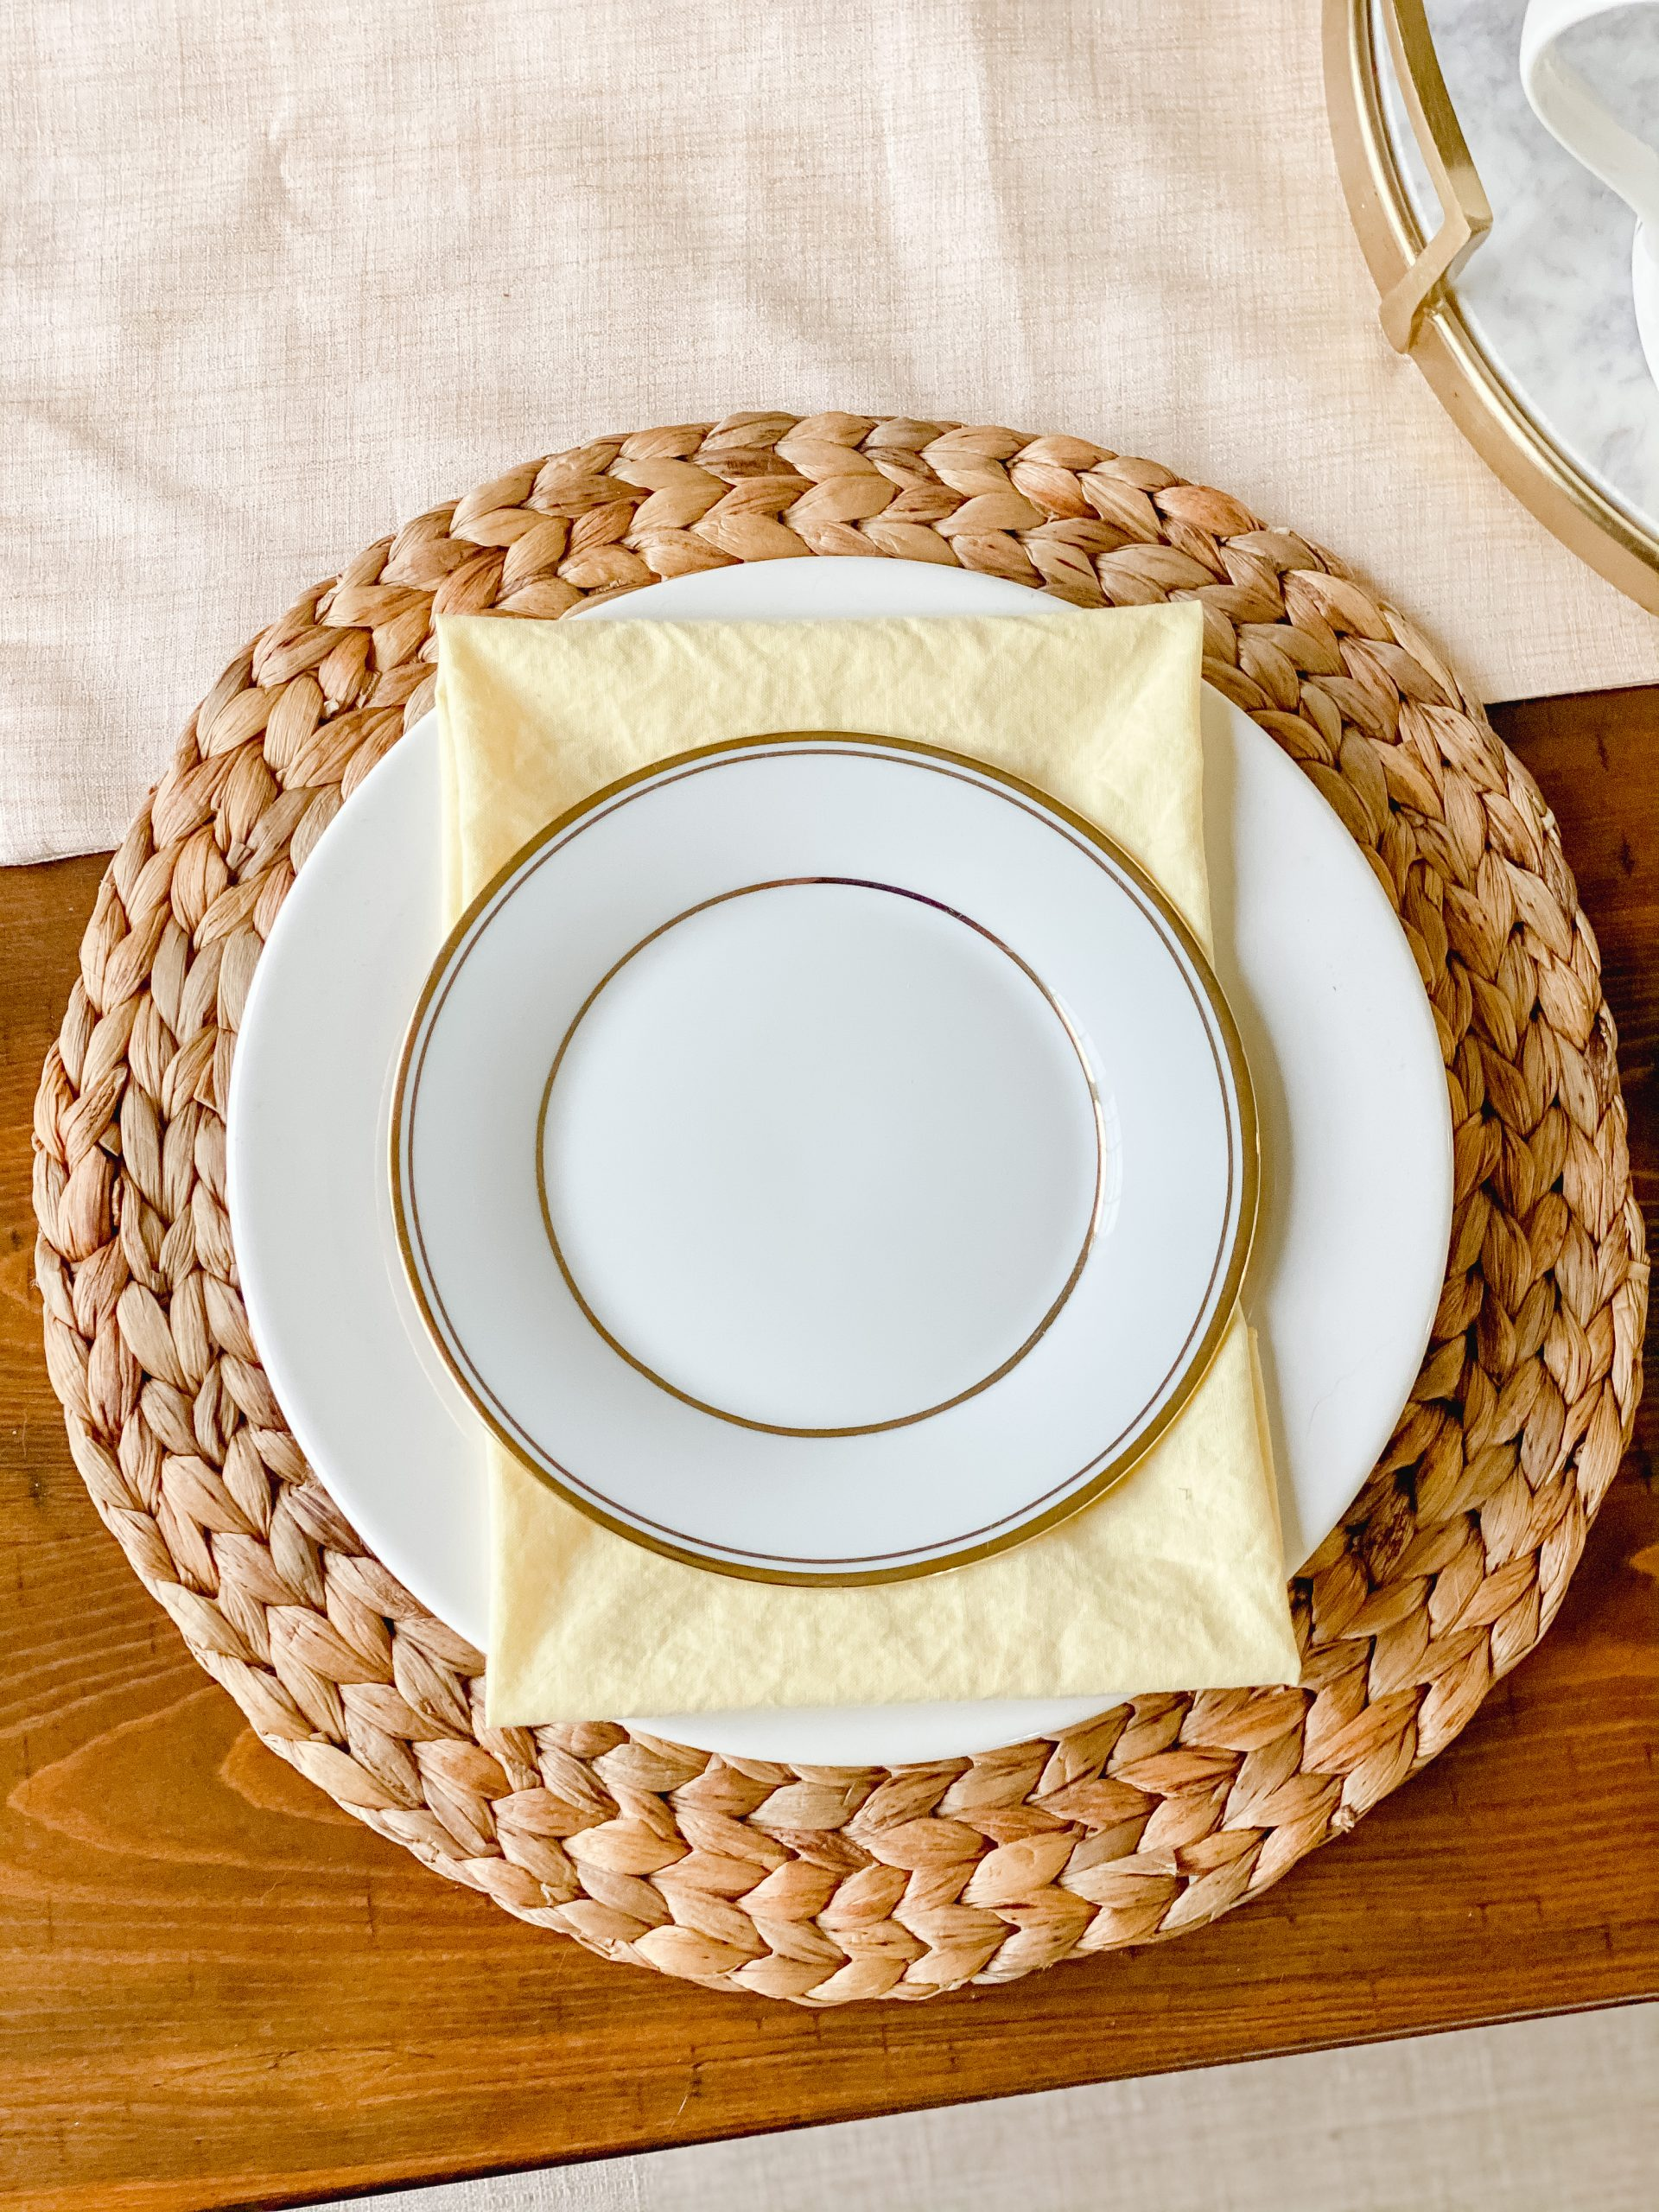 Table decor for spring with yellow napkins and gold rimmed plates in the place setting.